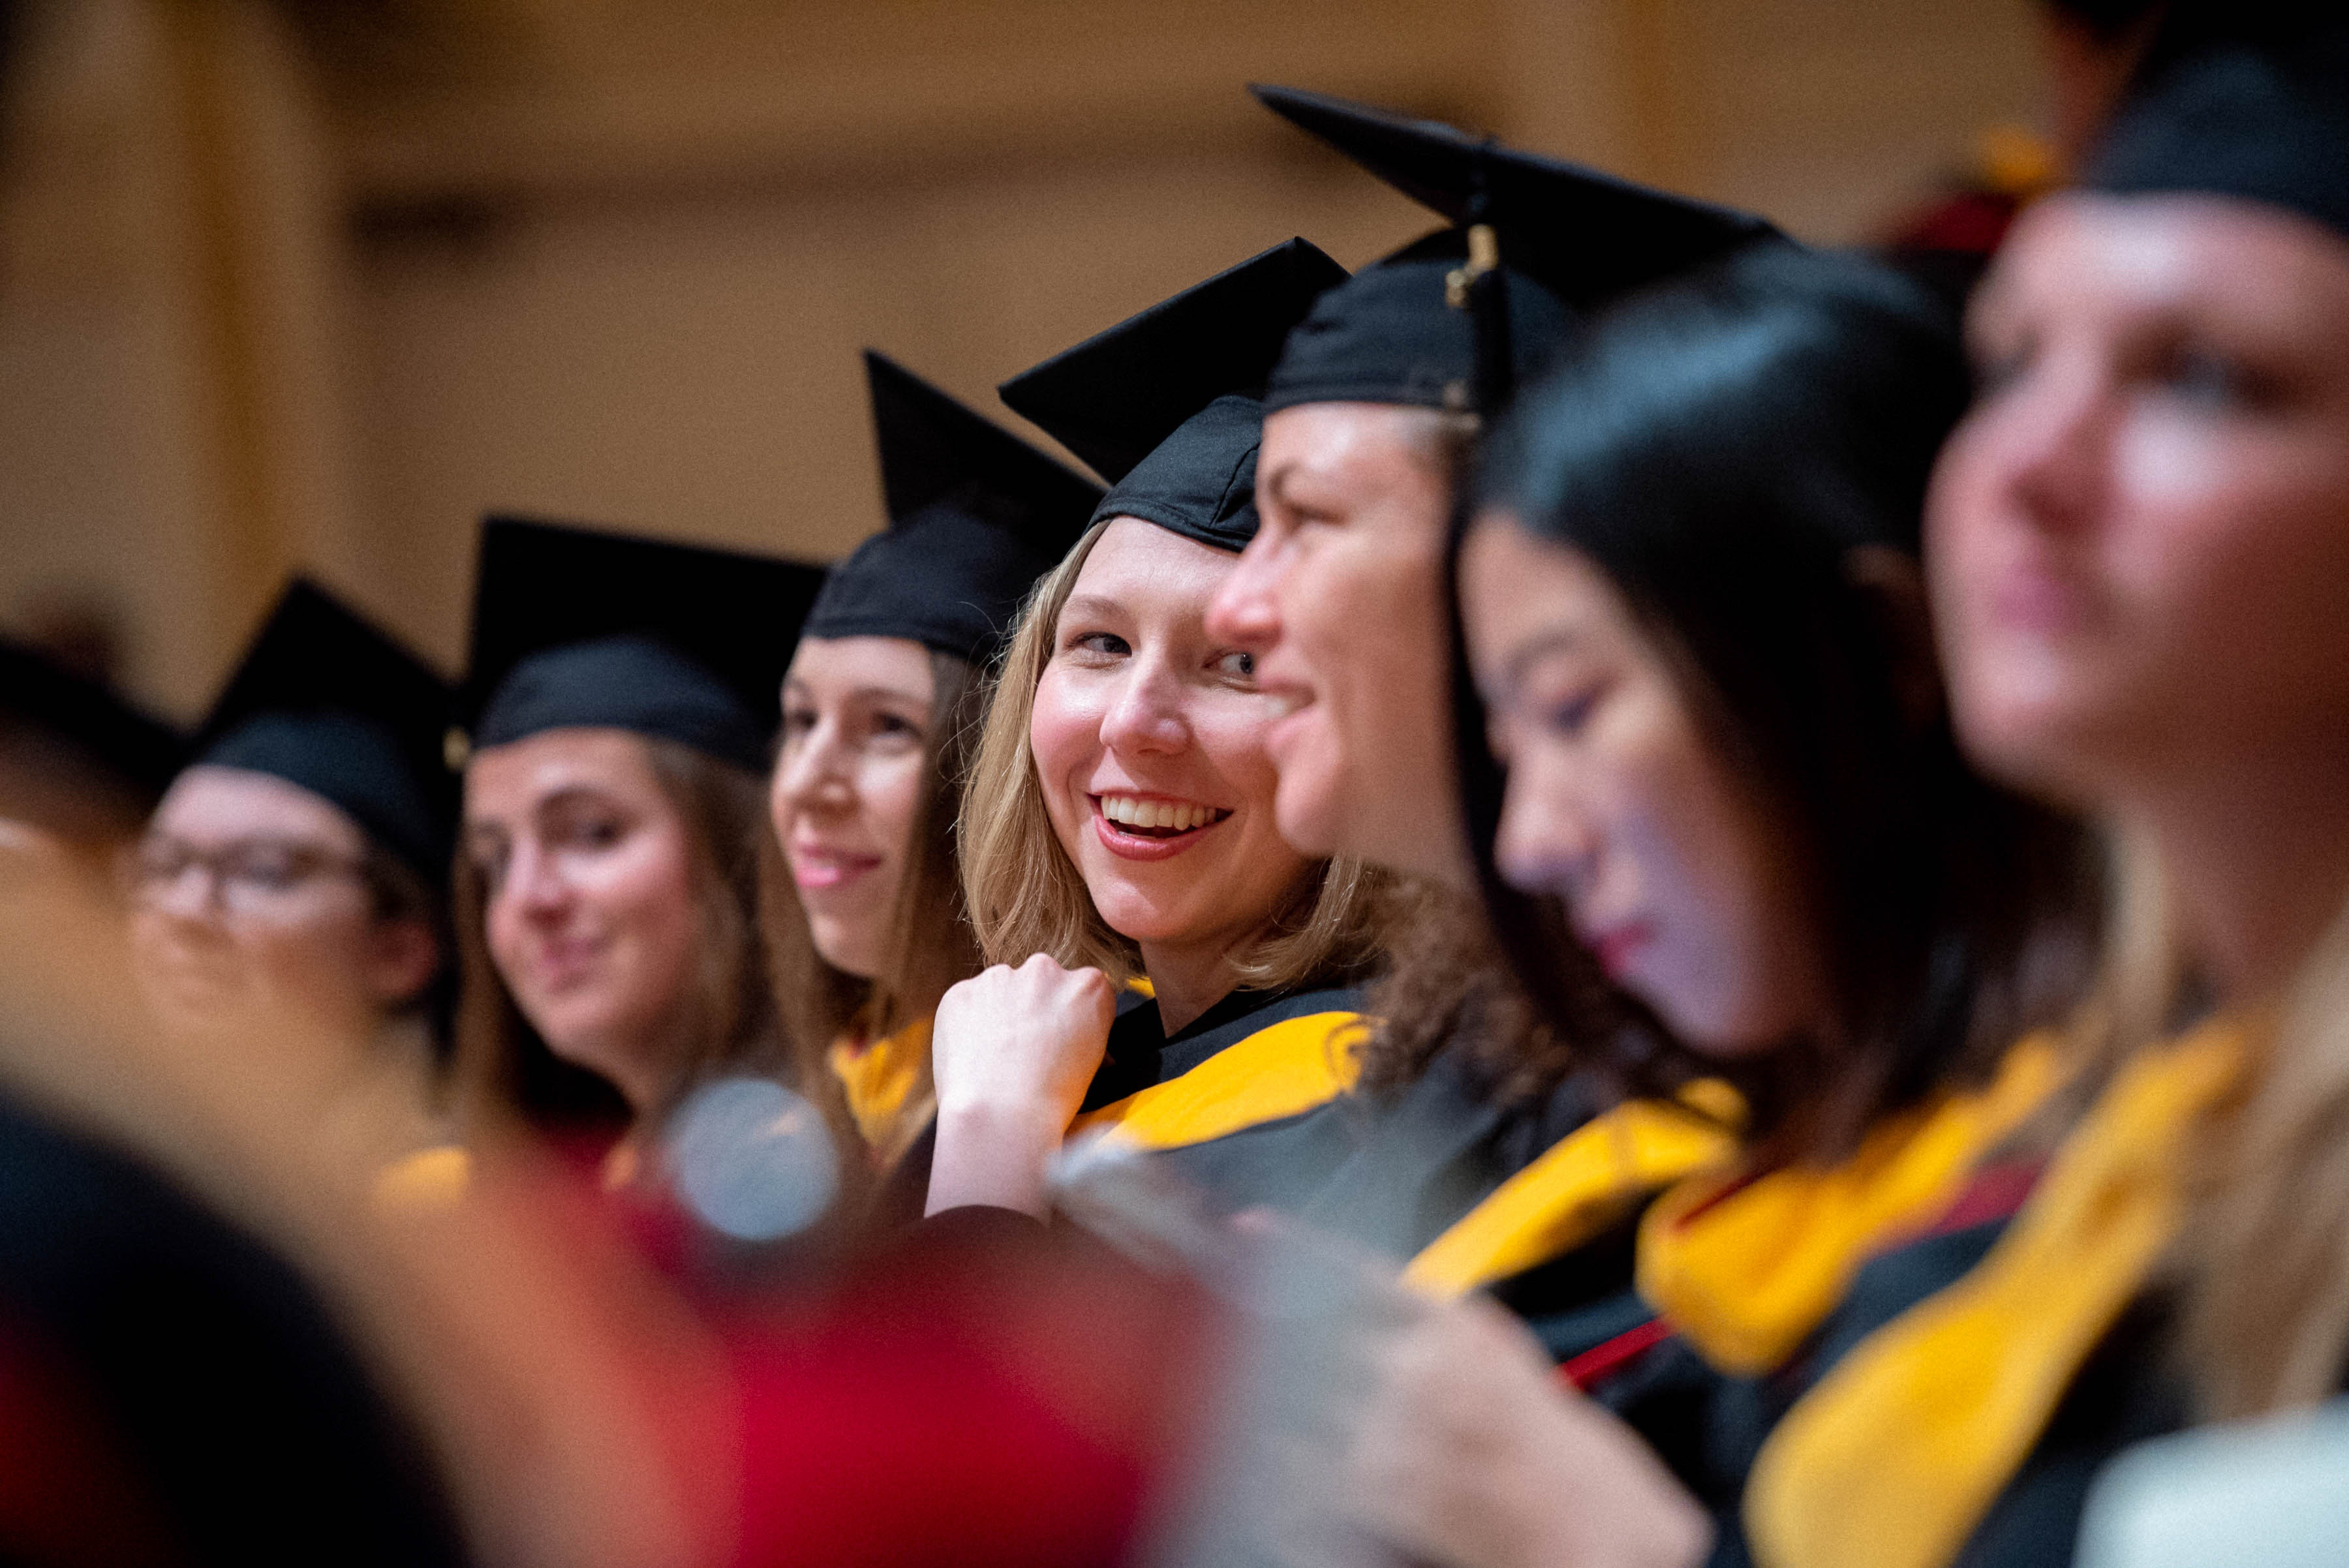 Graduates earning Master of Science degrees share a smile during commencement.